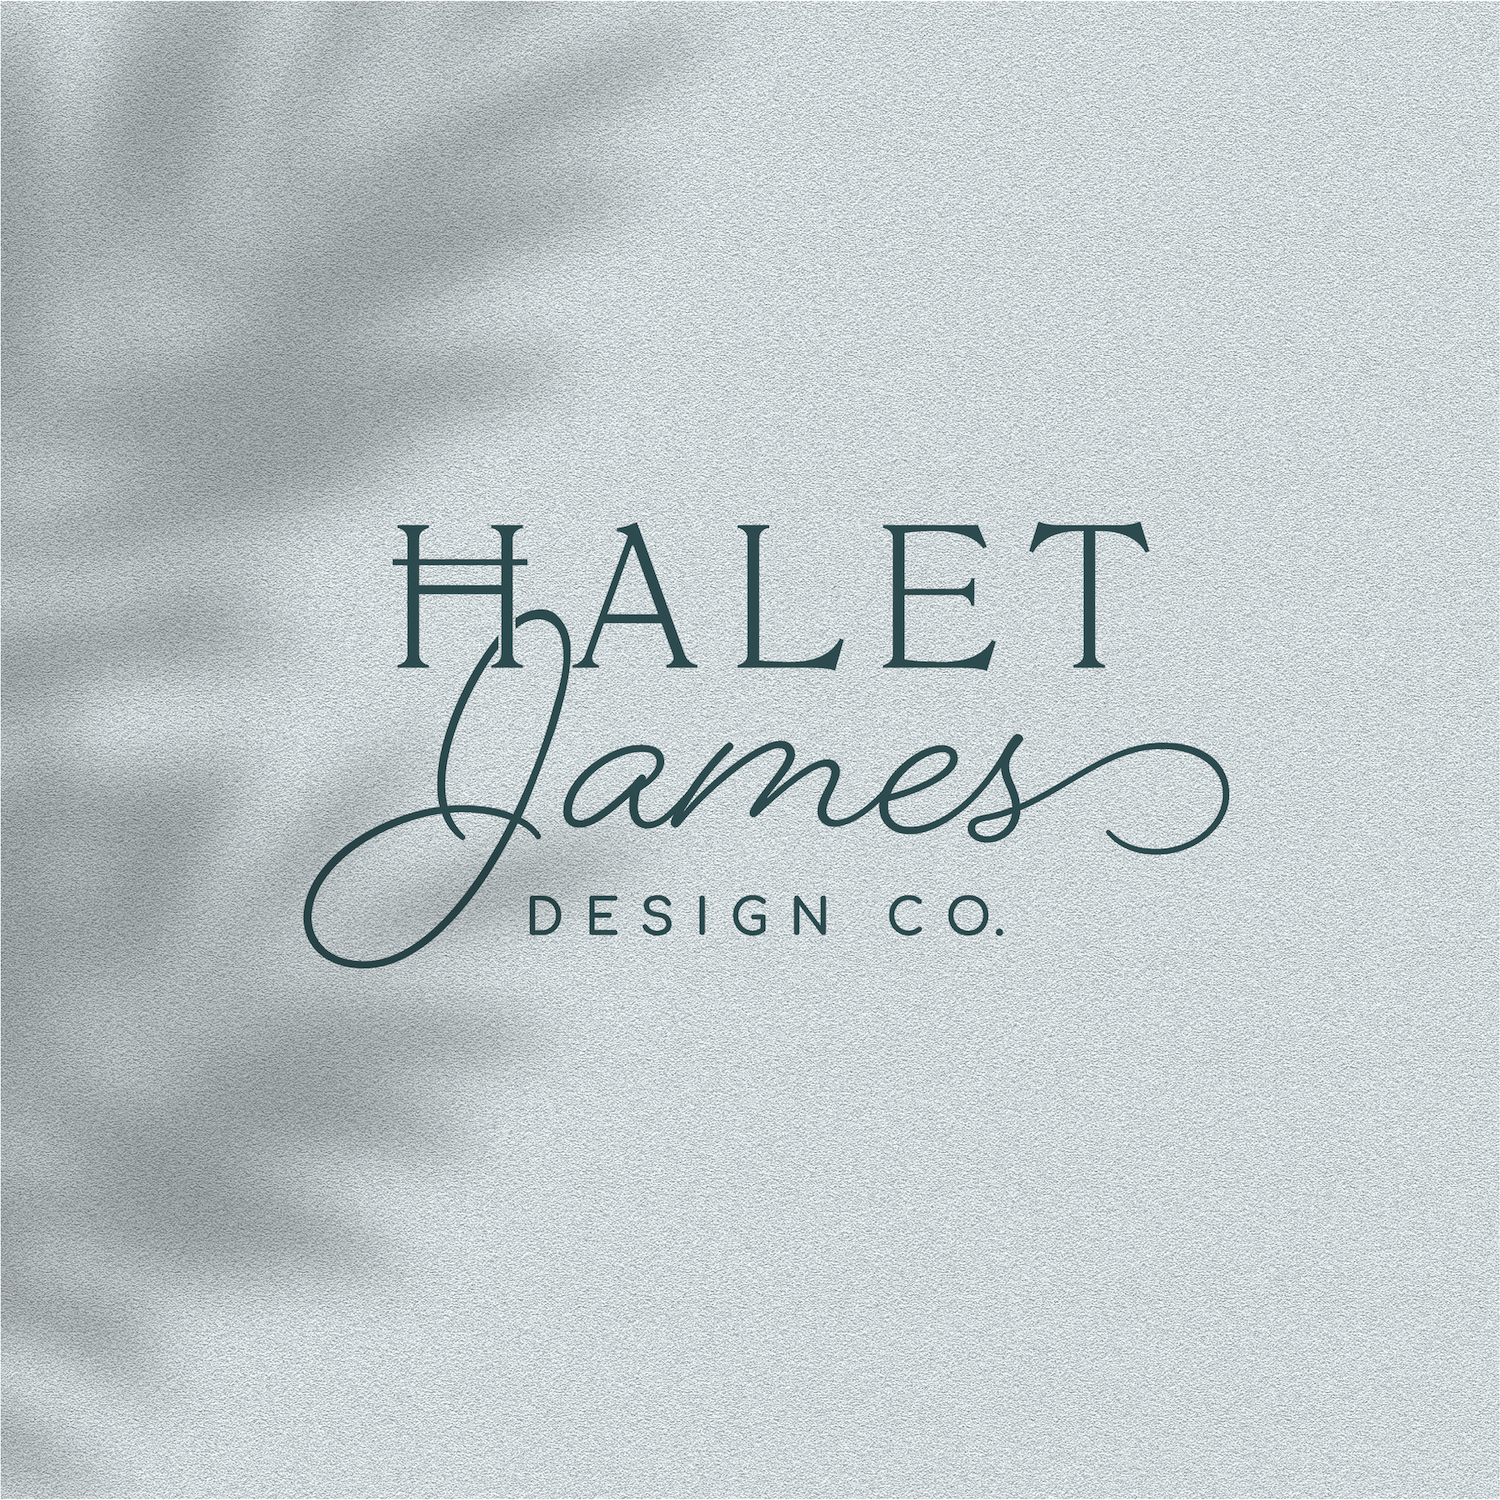 Halet James Design Company Waco Texas Design Builder Brand and Logo Design by Kindly by Kelsea